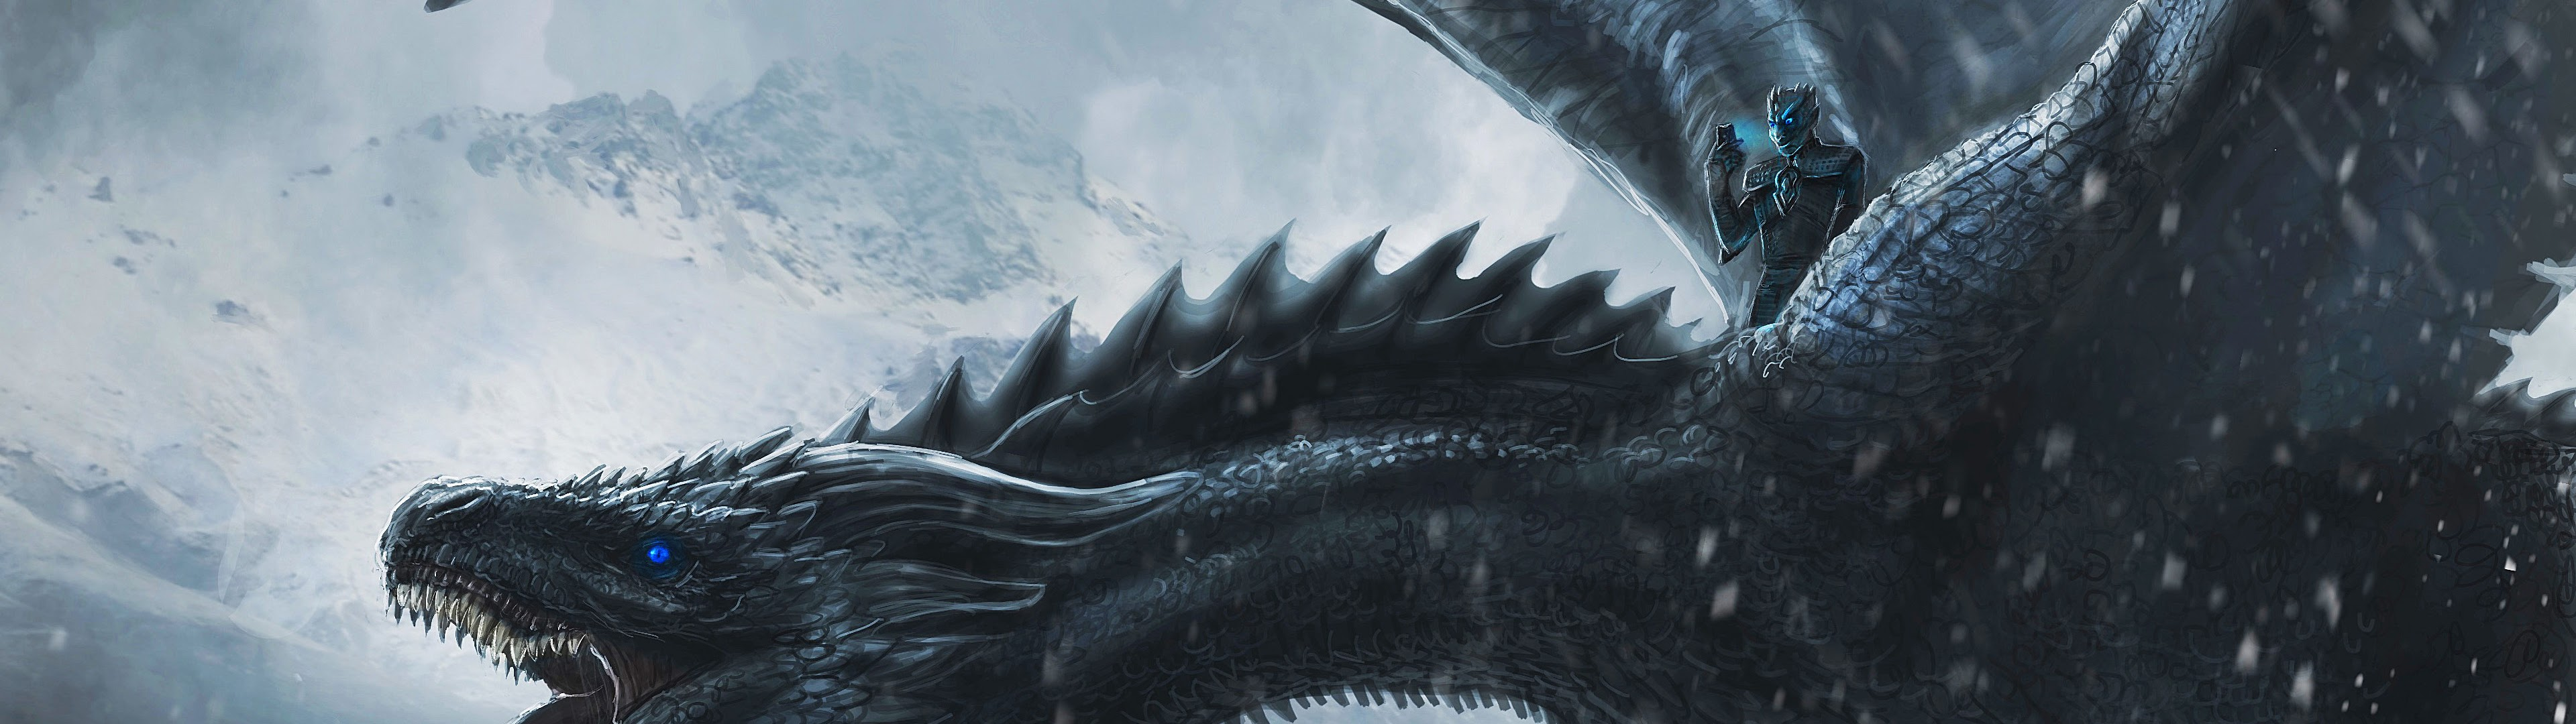 Game Of Thrones Night King Dragon 4k Wallpaper 74